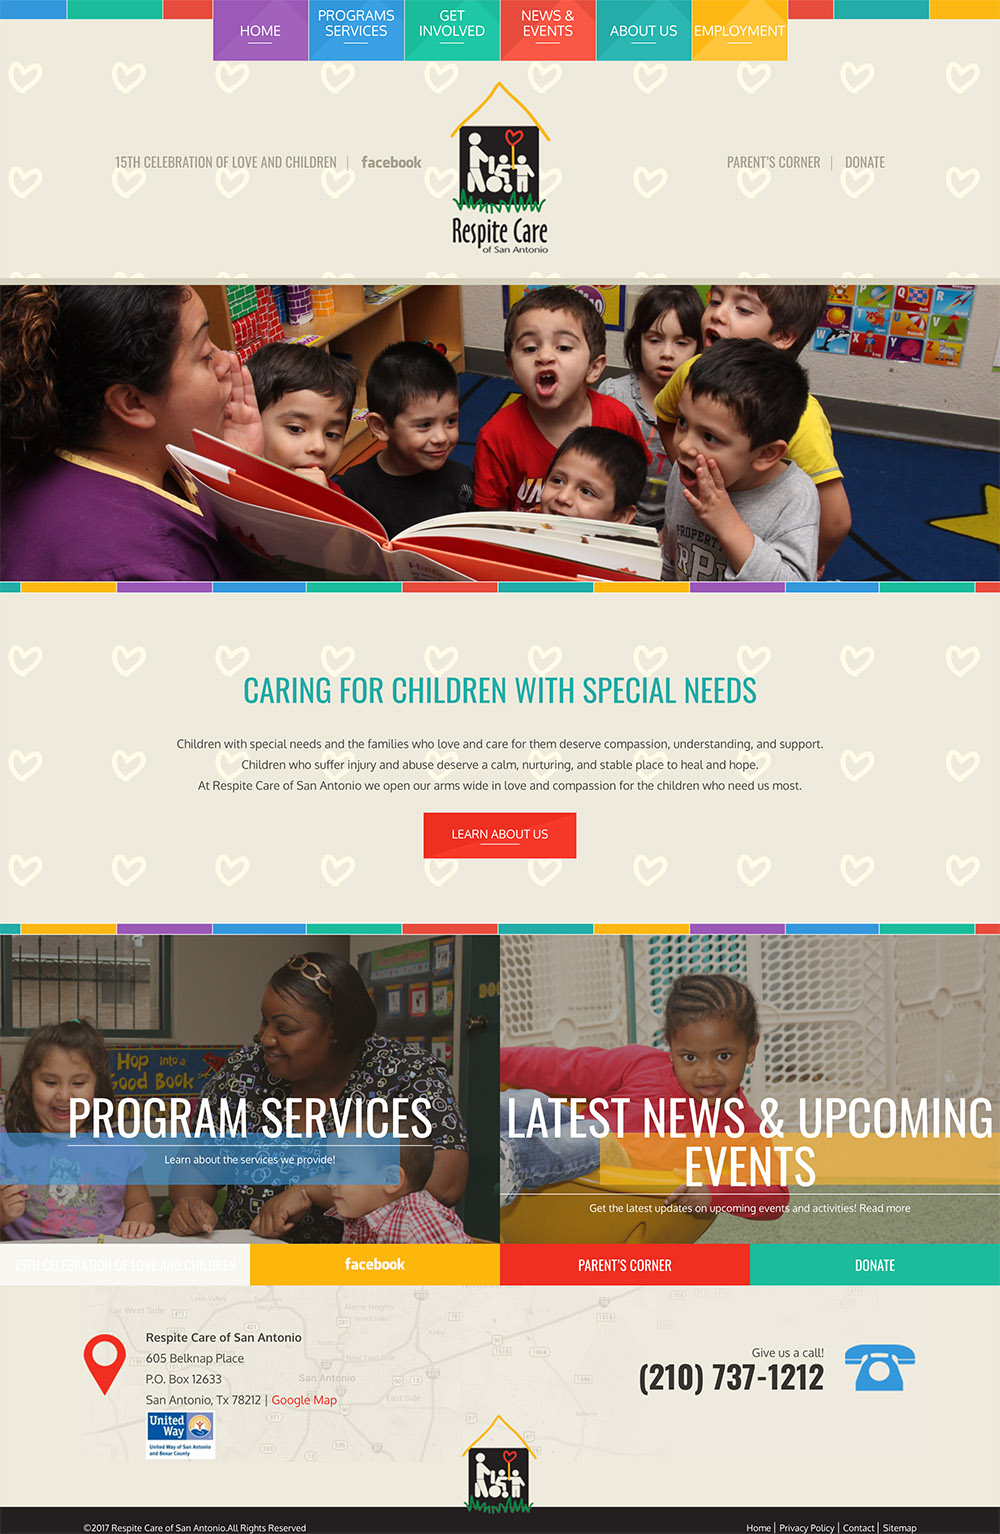 Homepage view of the Respite Care of San Antonio website